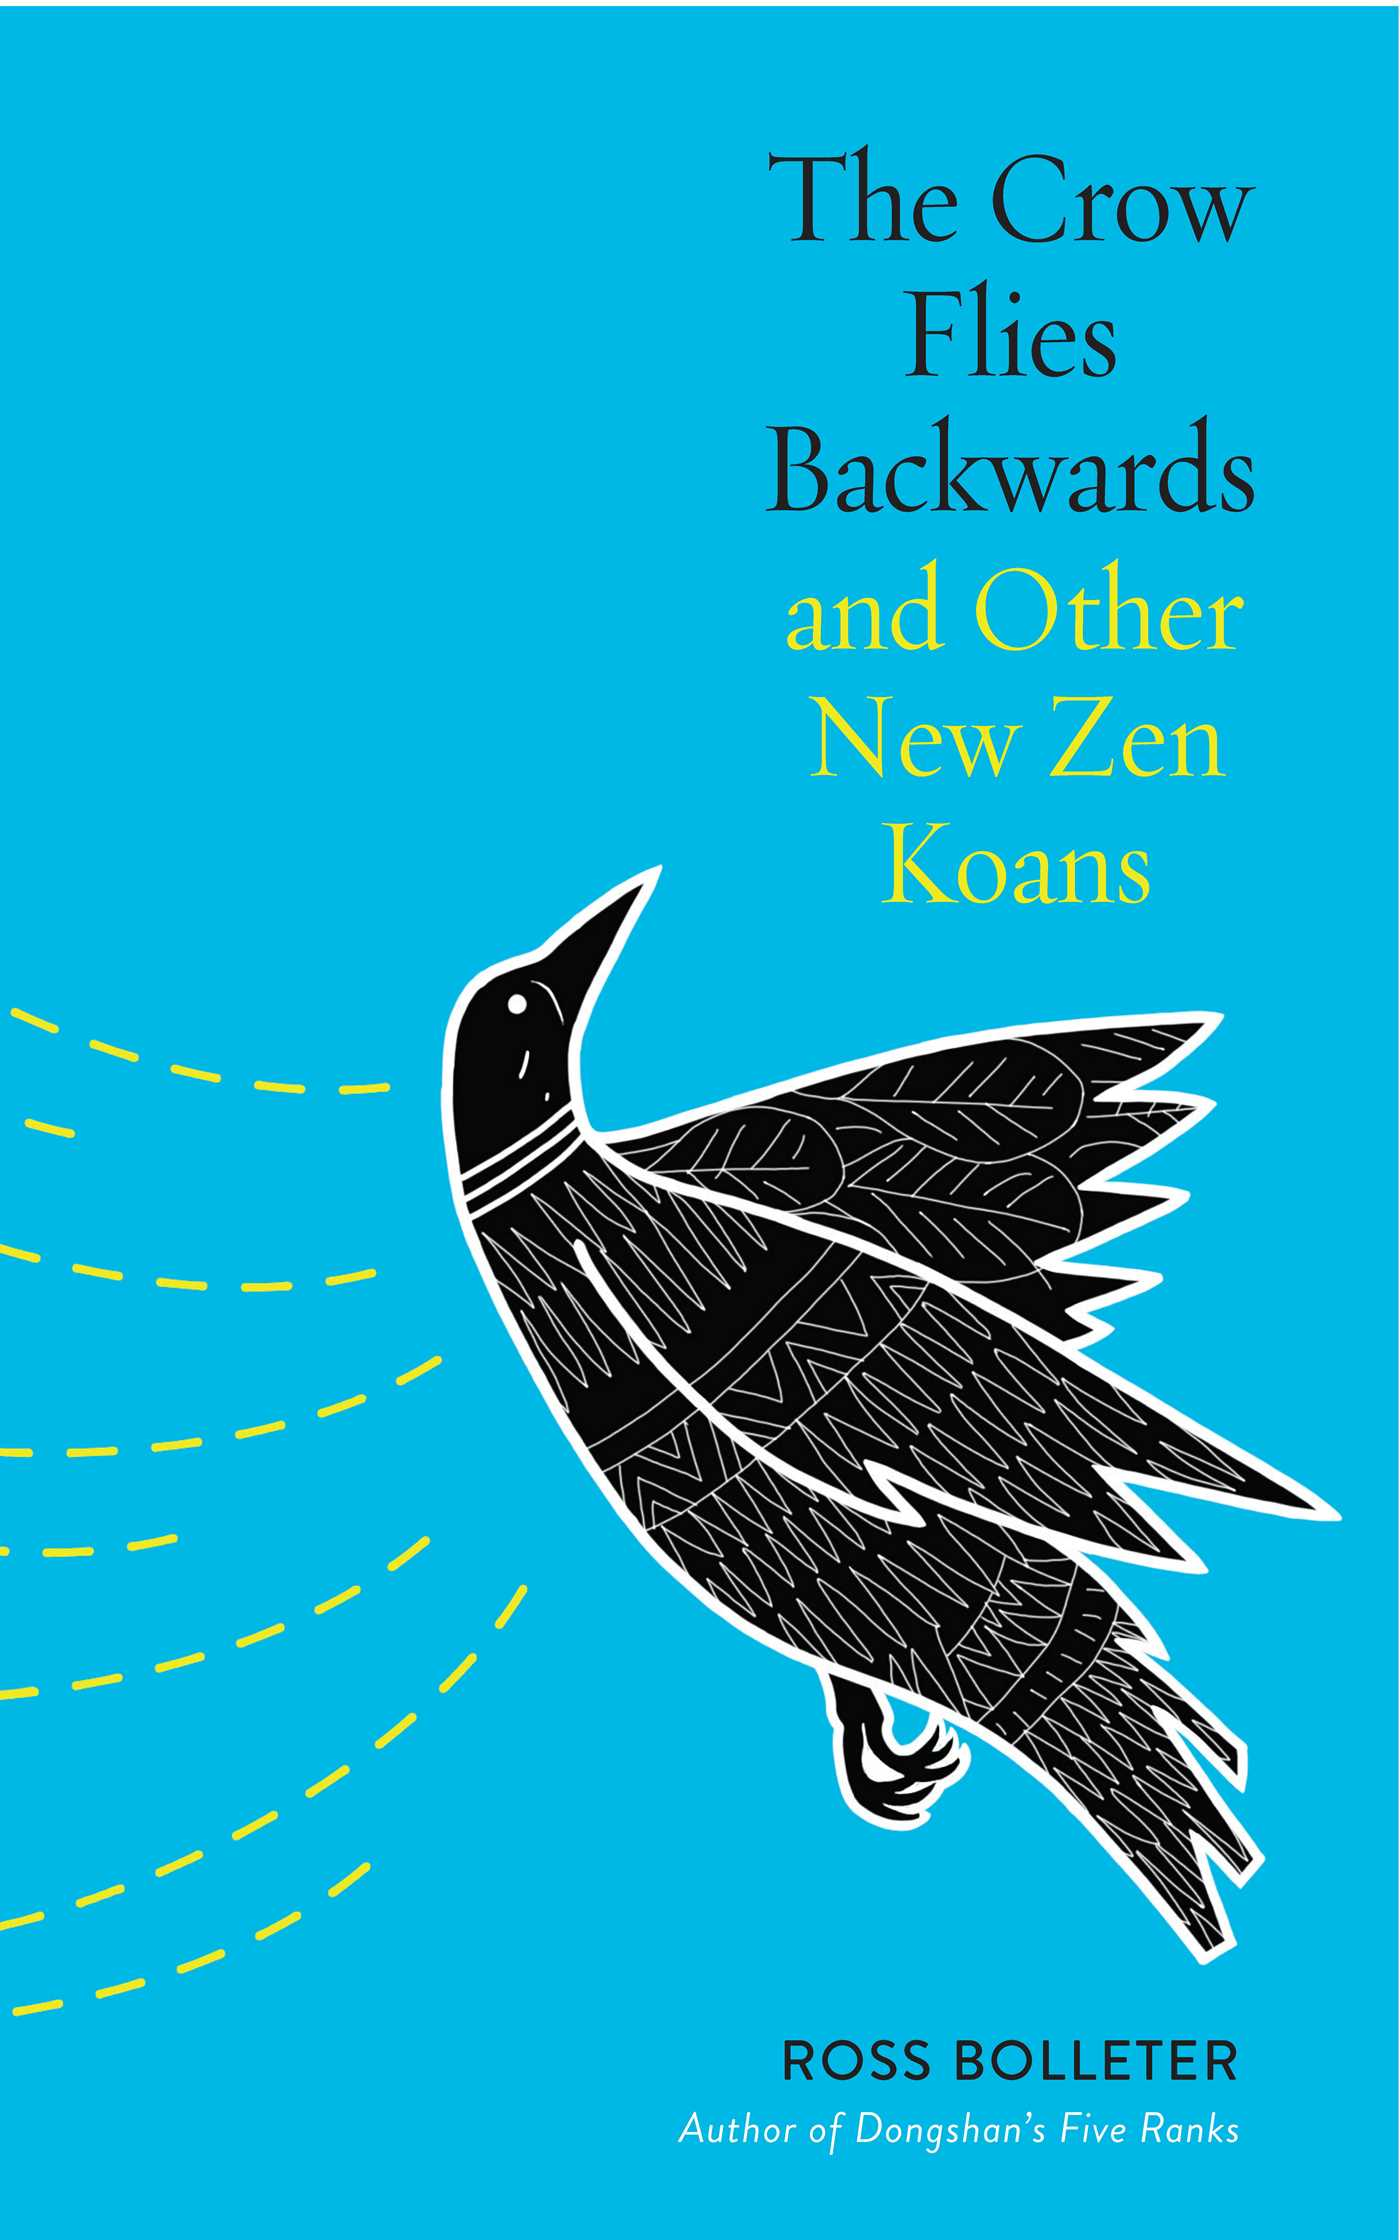 The crow flies backwards and other new zen koans 9781614292944 hr